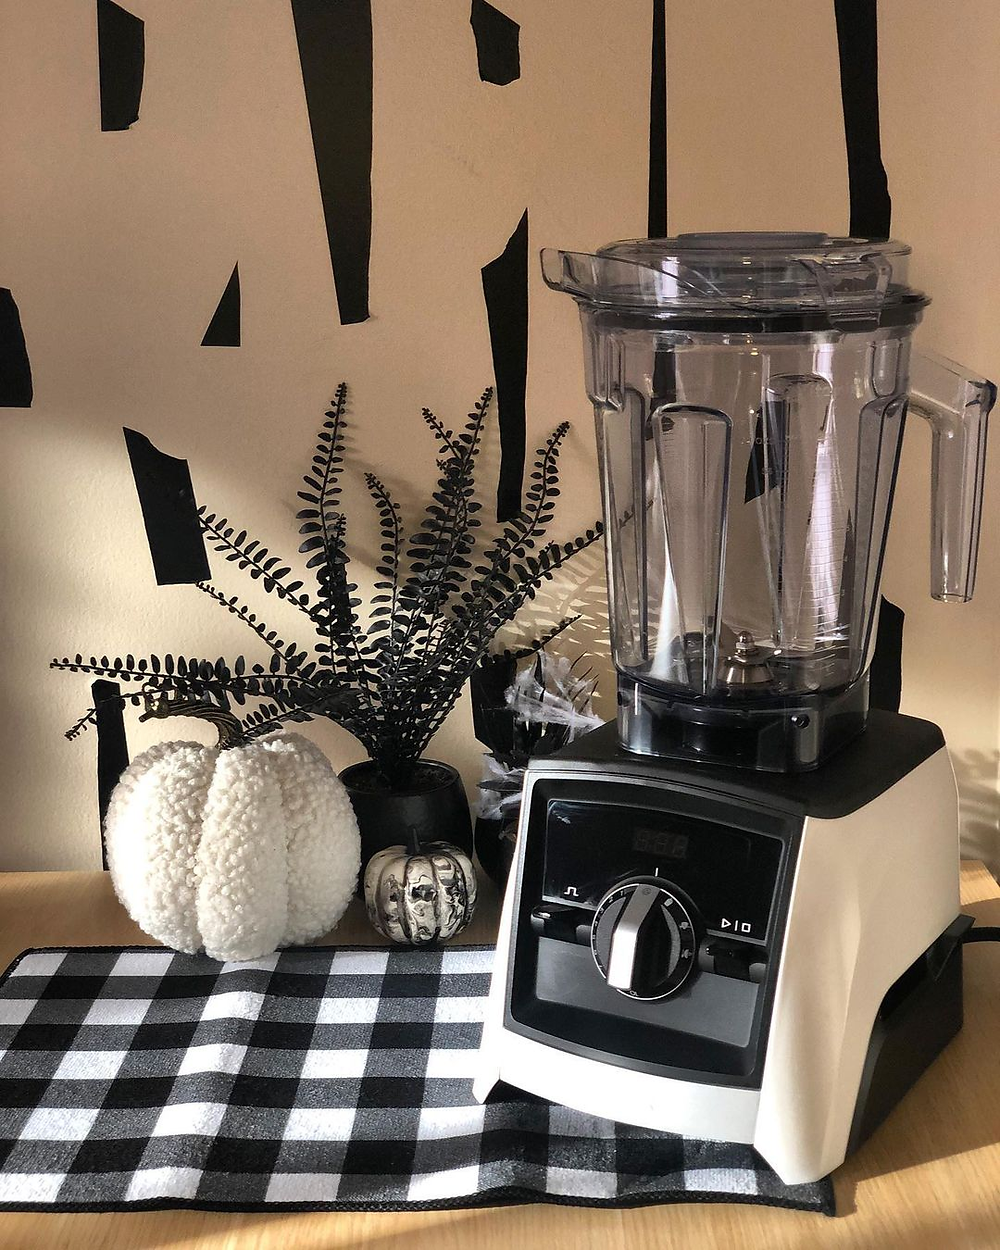 Vitamix blender on table smoothies